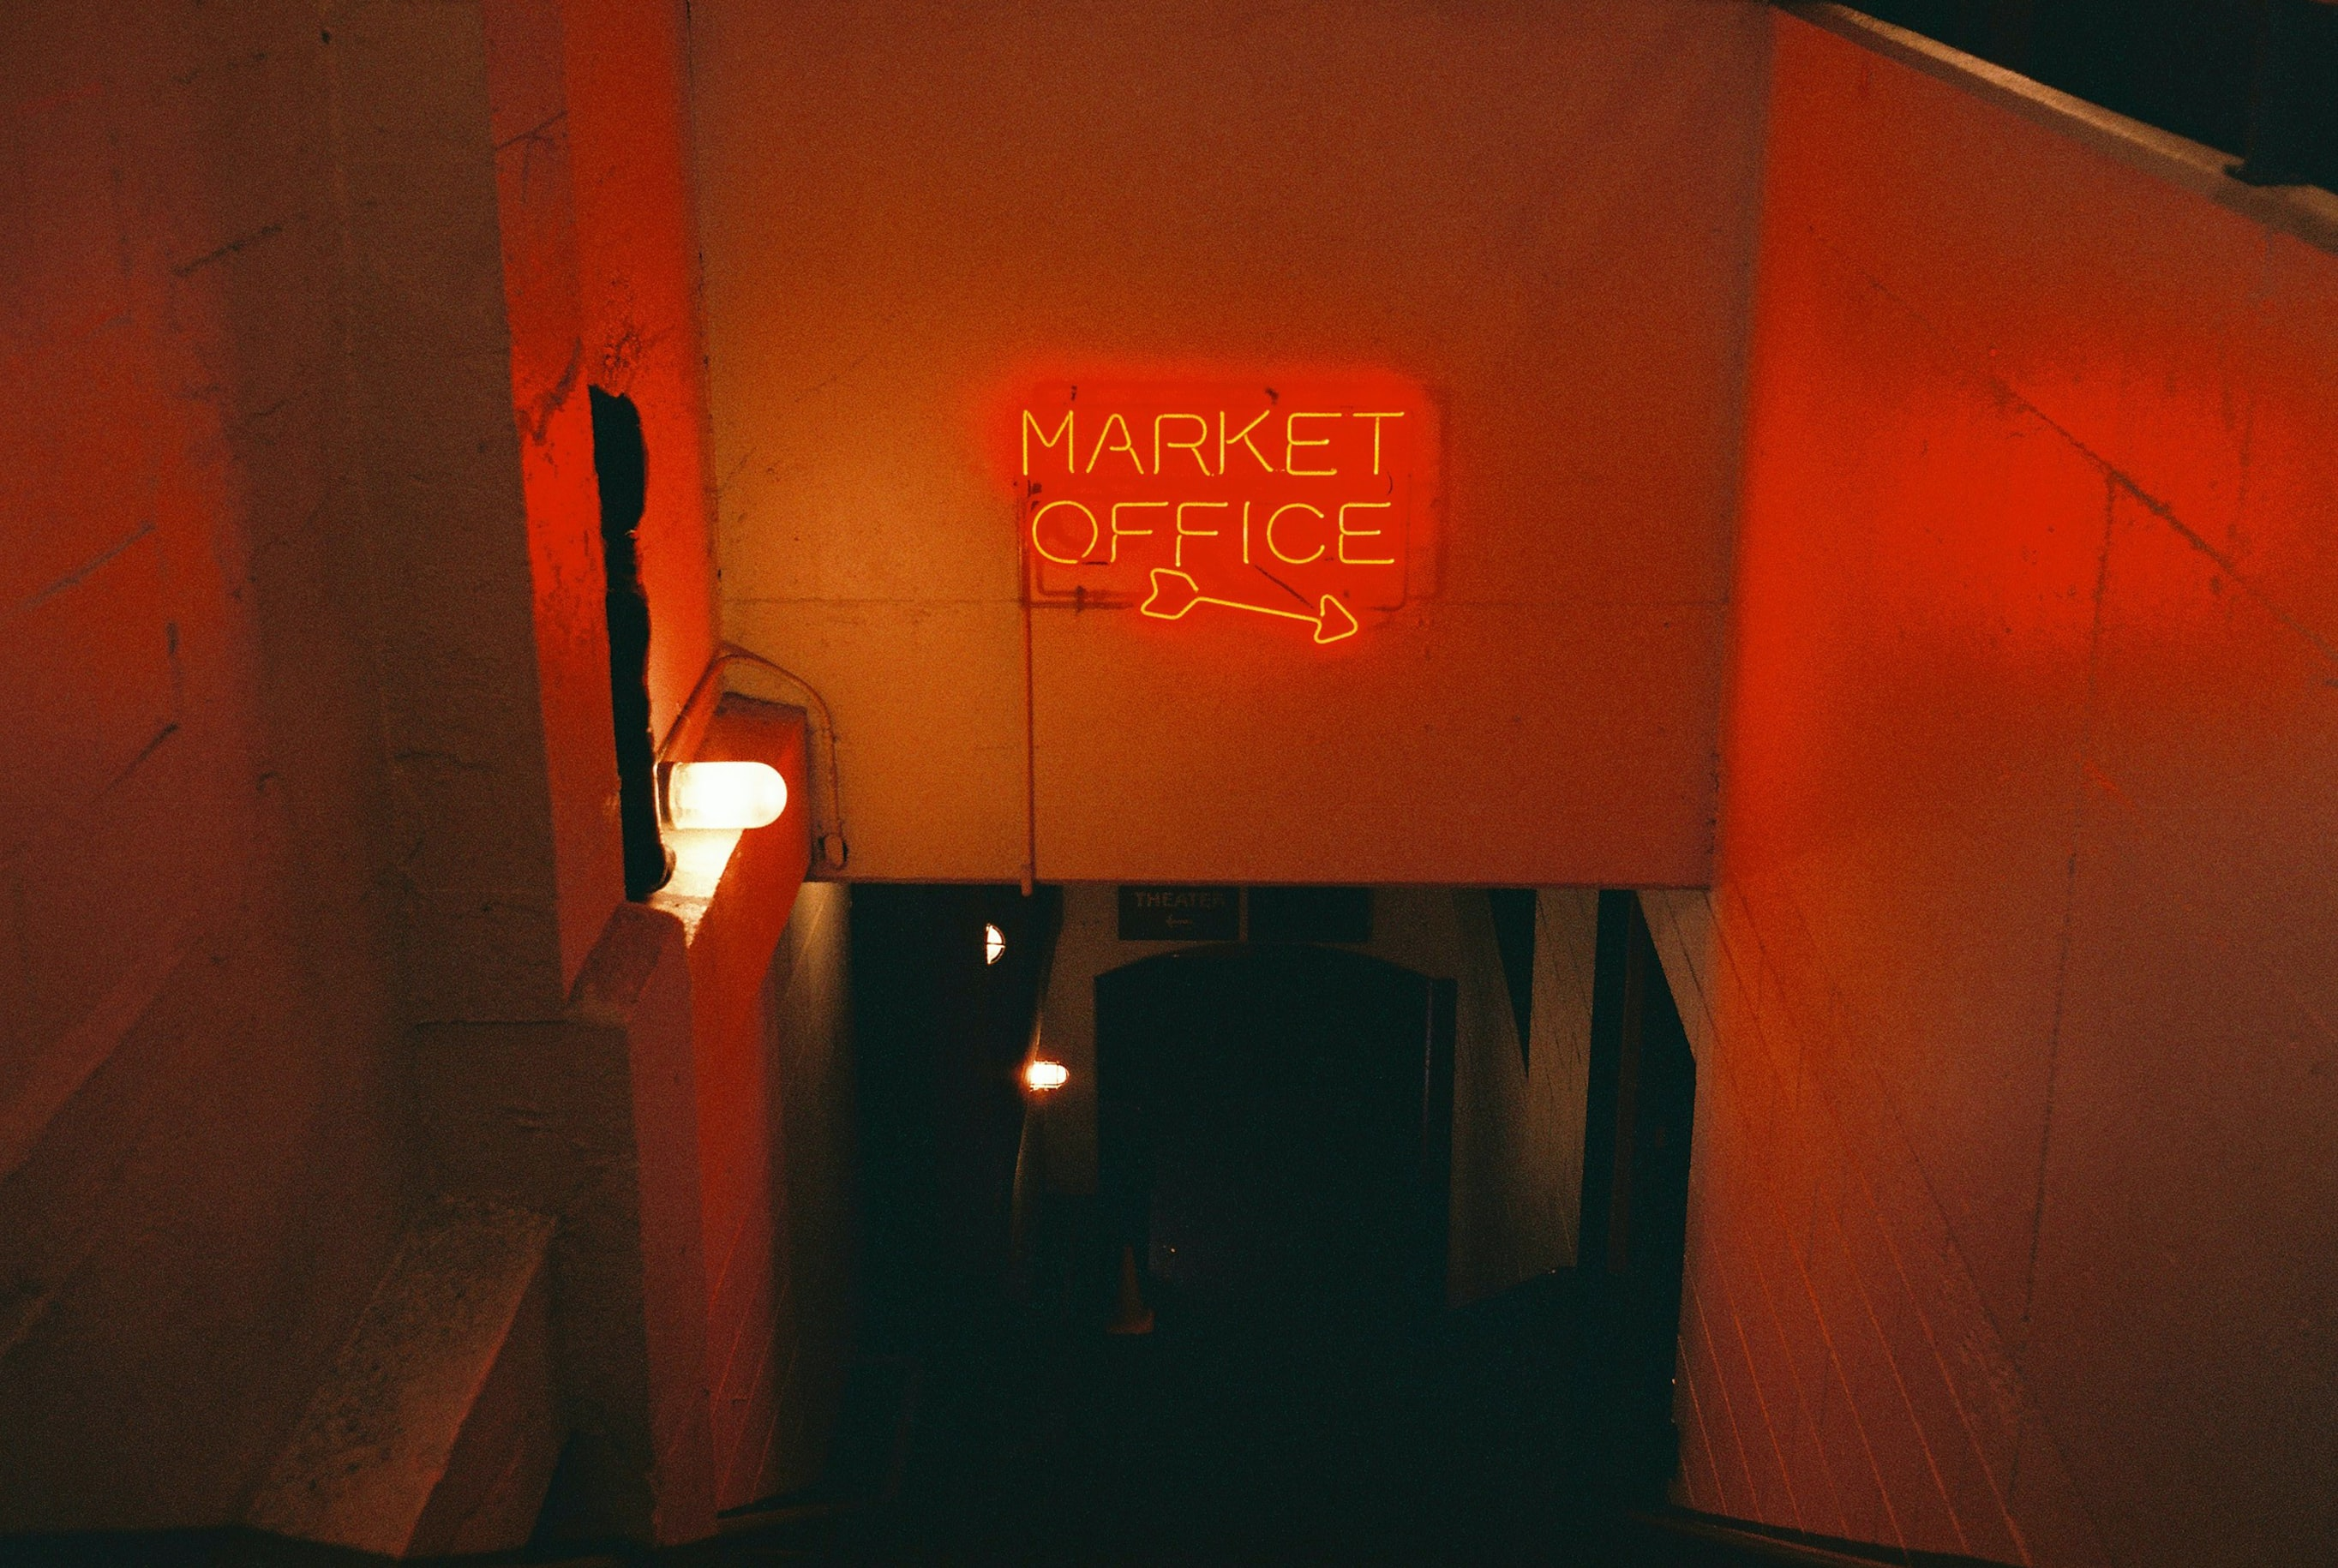 Market Office neon signage